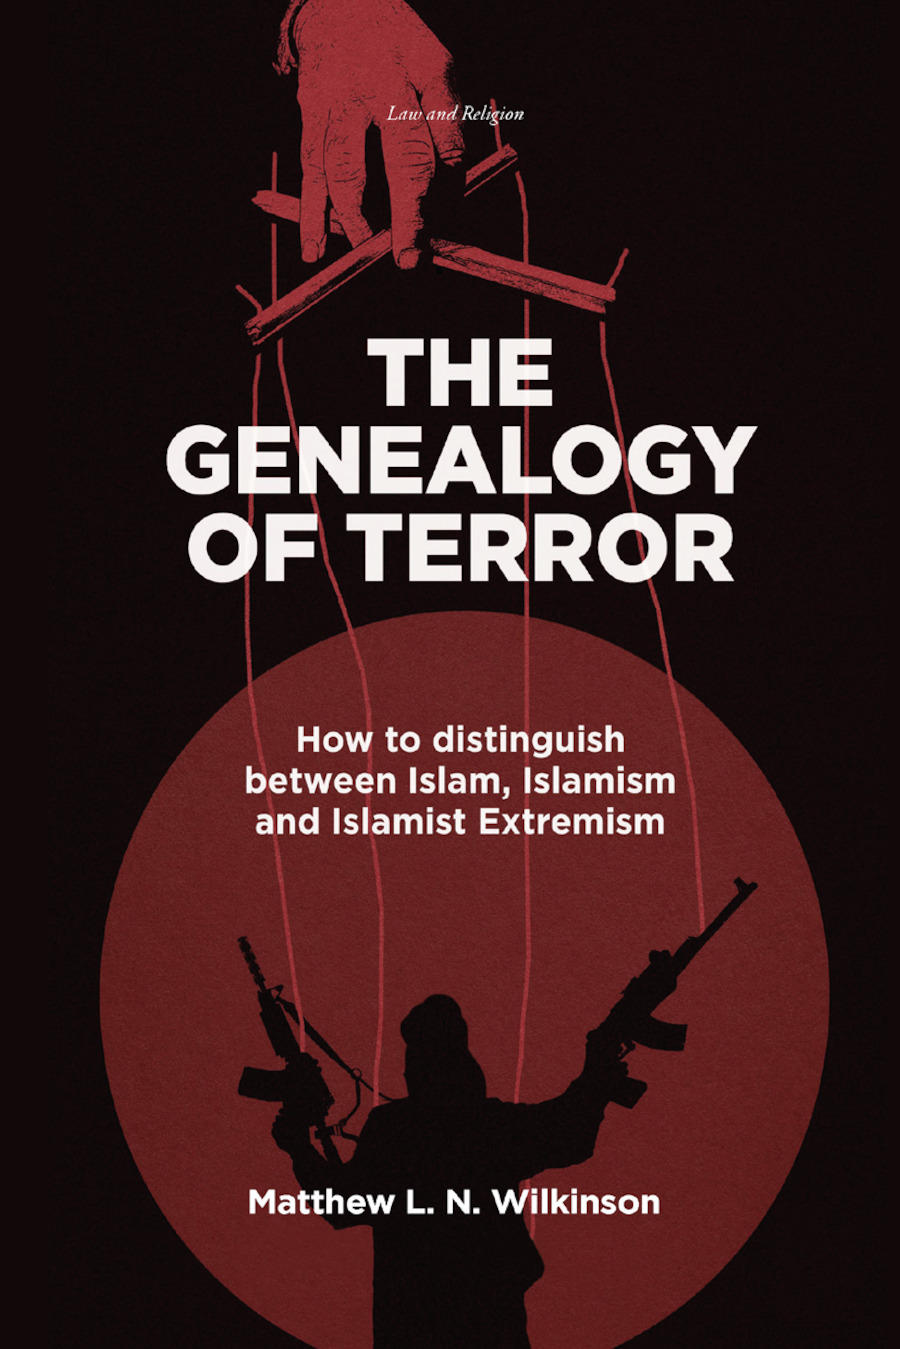 The Genealogy of Terror: How to distinguish between Islam, Islamism and Islamist Extremism book cover